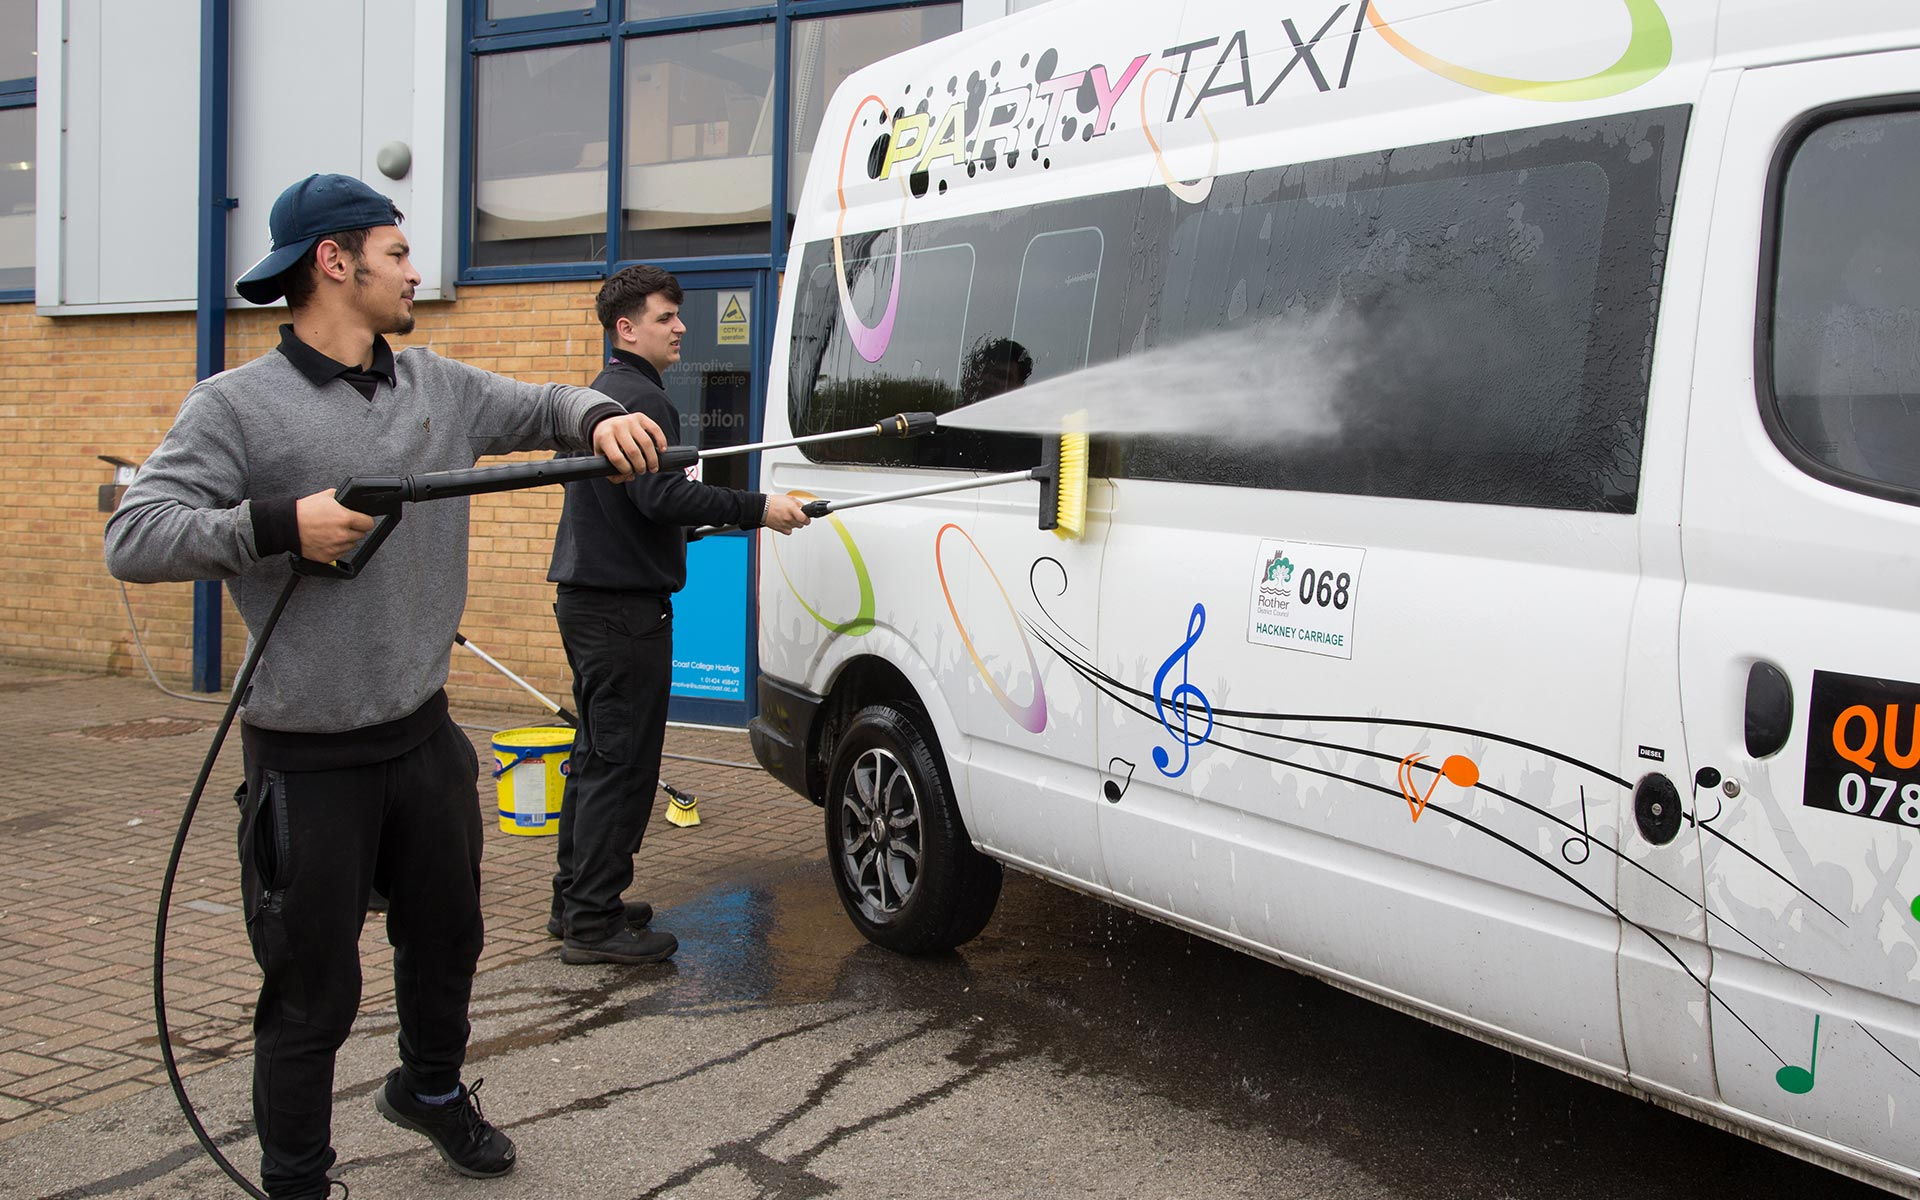 Washing cars and valeting is taught at East Sussex College Hastings Automotive Centre